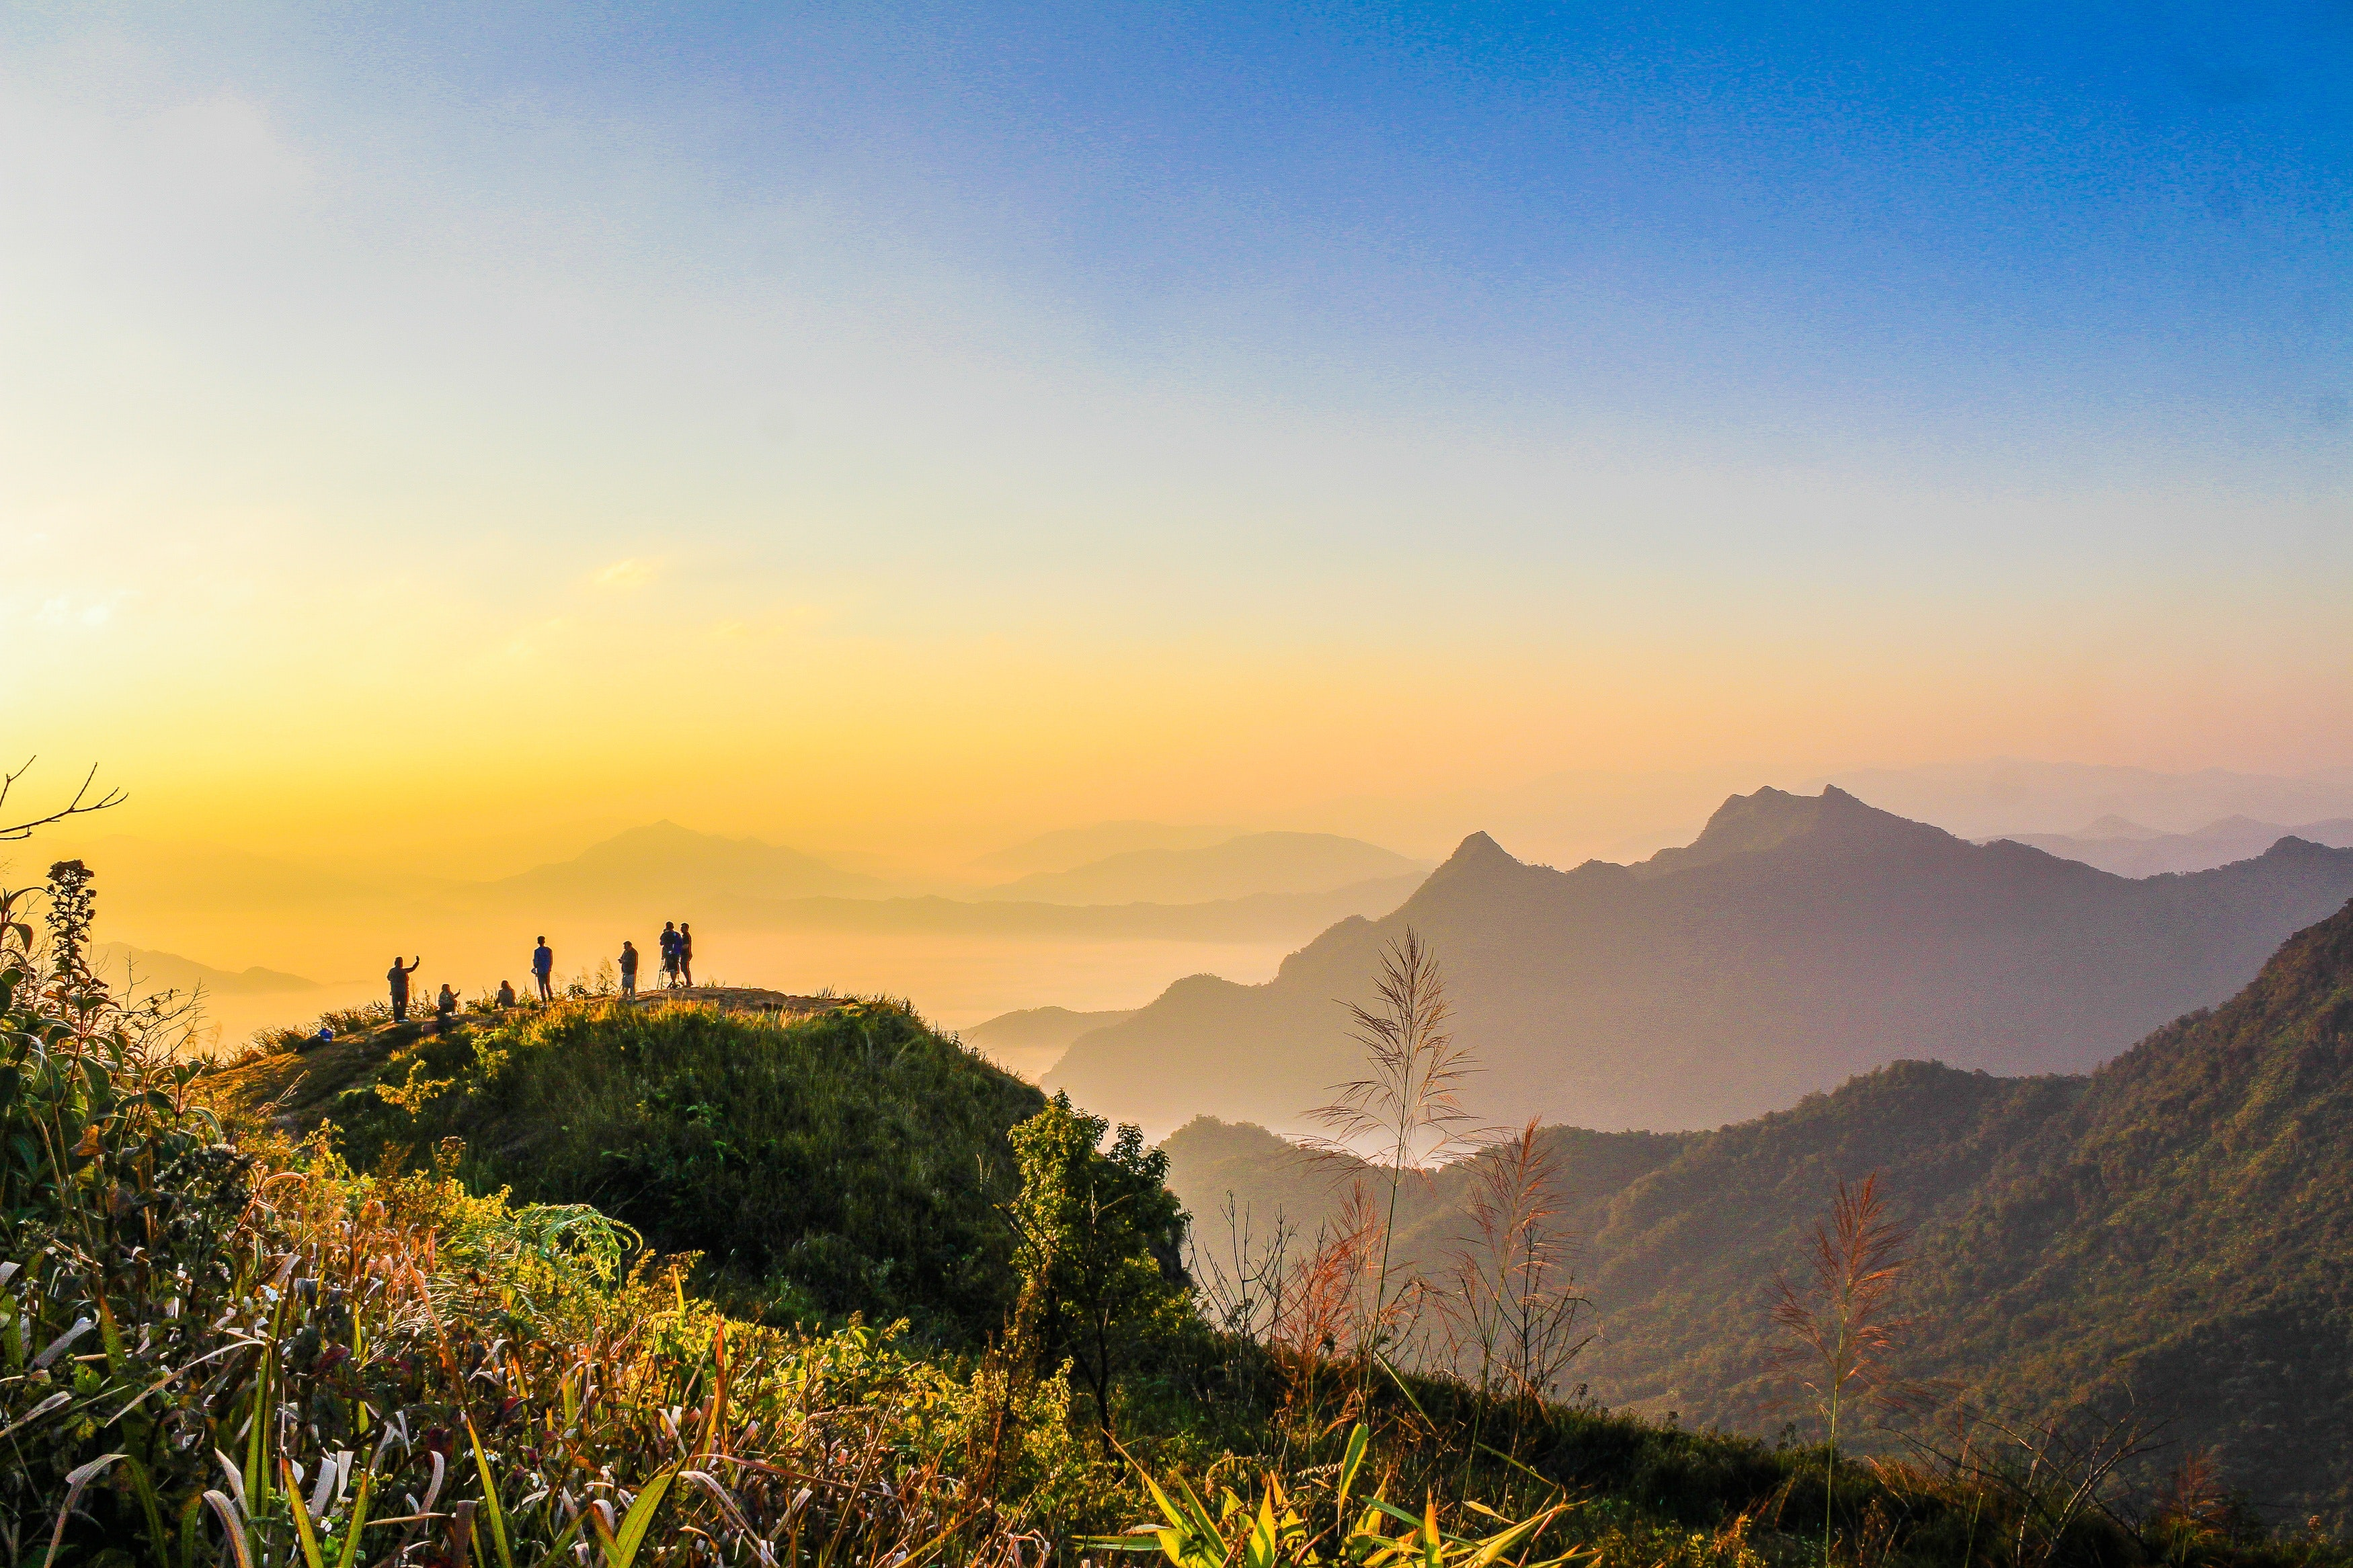 Photo of People Standing on Top of Mountain Near Grasses Facing Mountains during Golden Hours, Adventure, Summer, North, Outdoors, HQ Photo